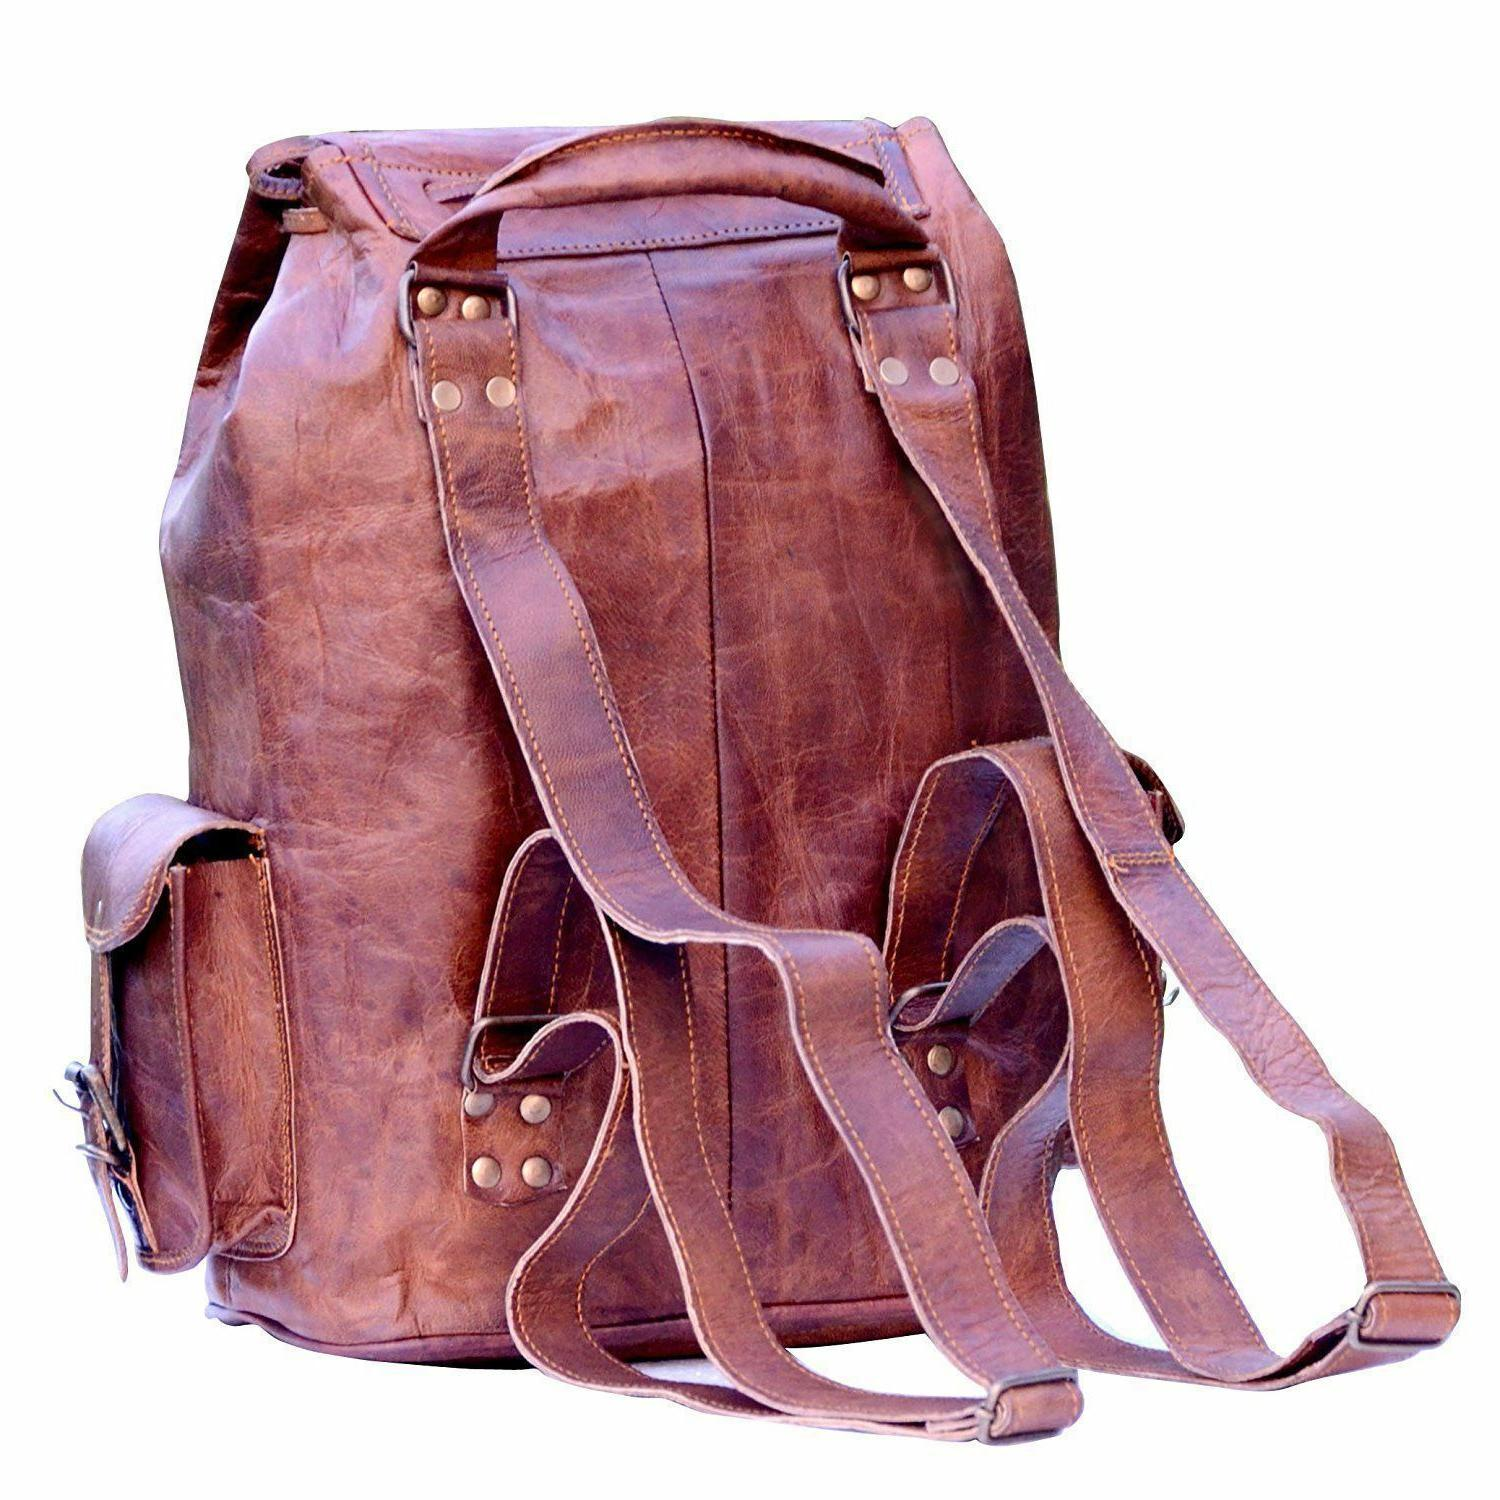 New Genuine Leather Back Pack Bag For Men's and Women's.